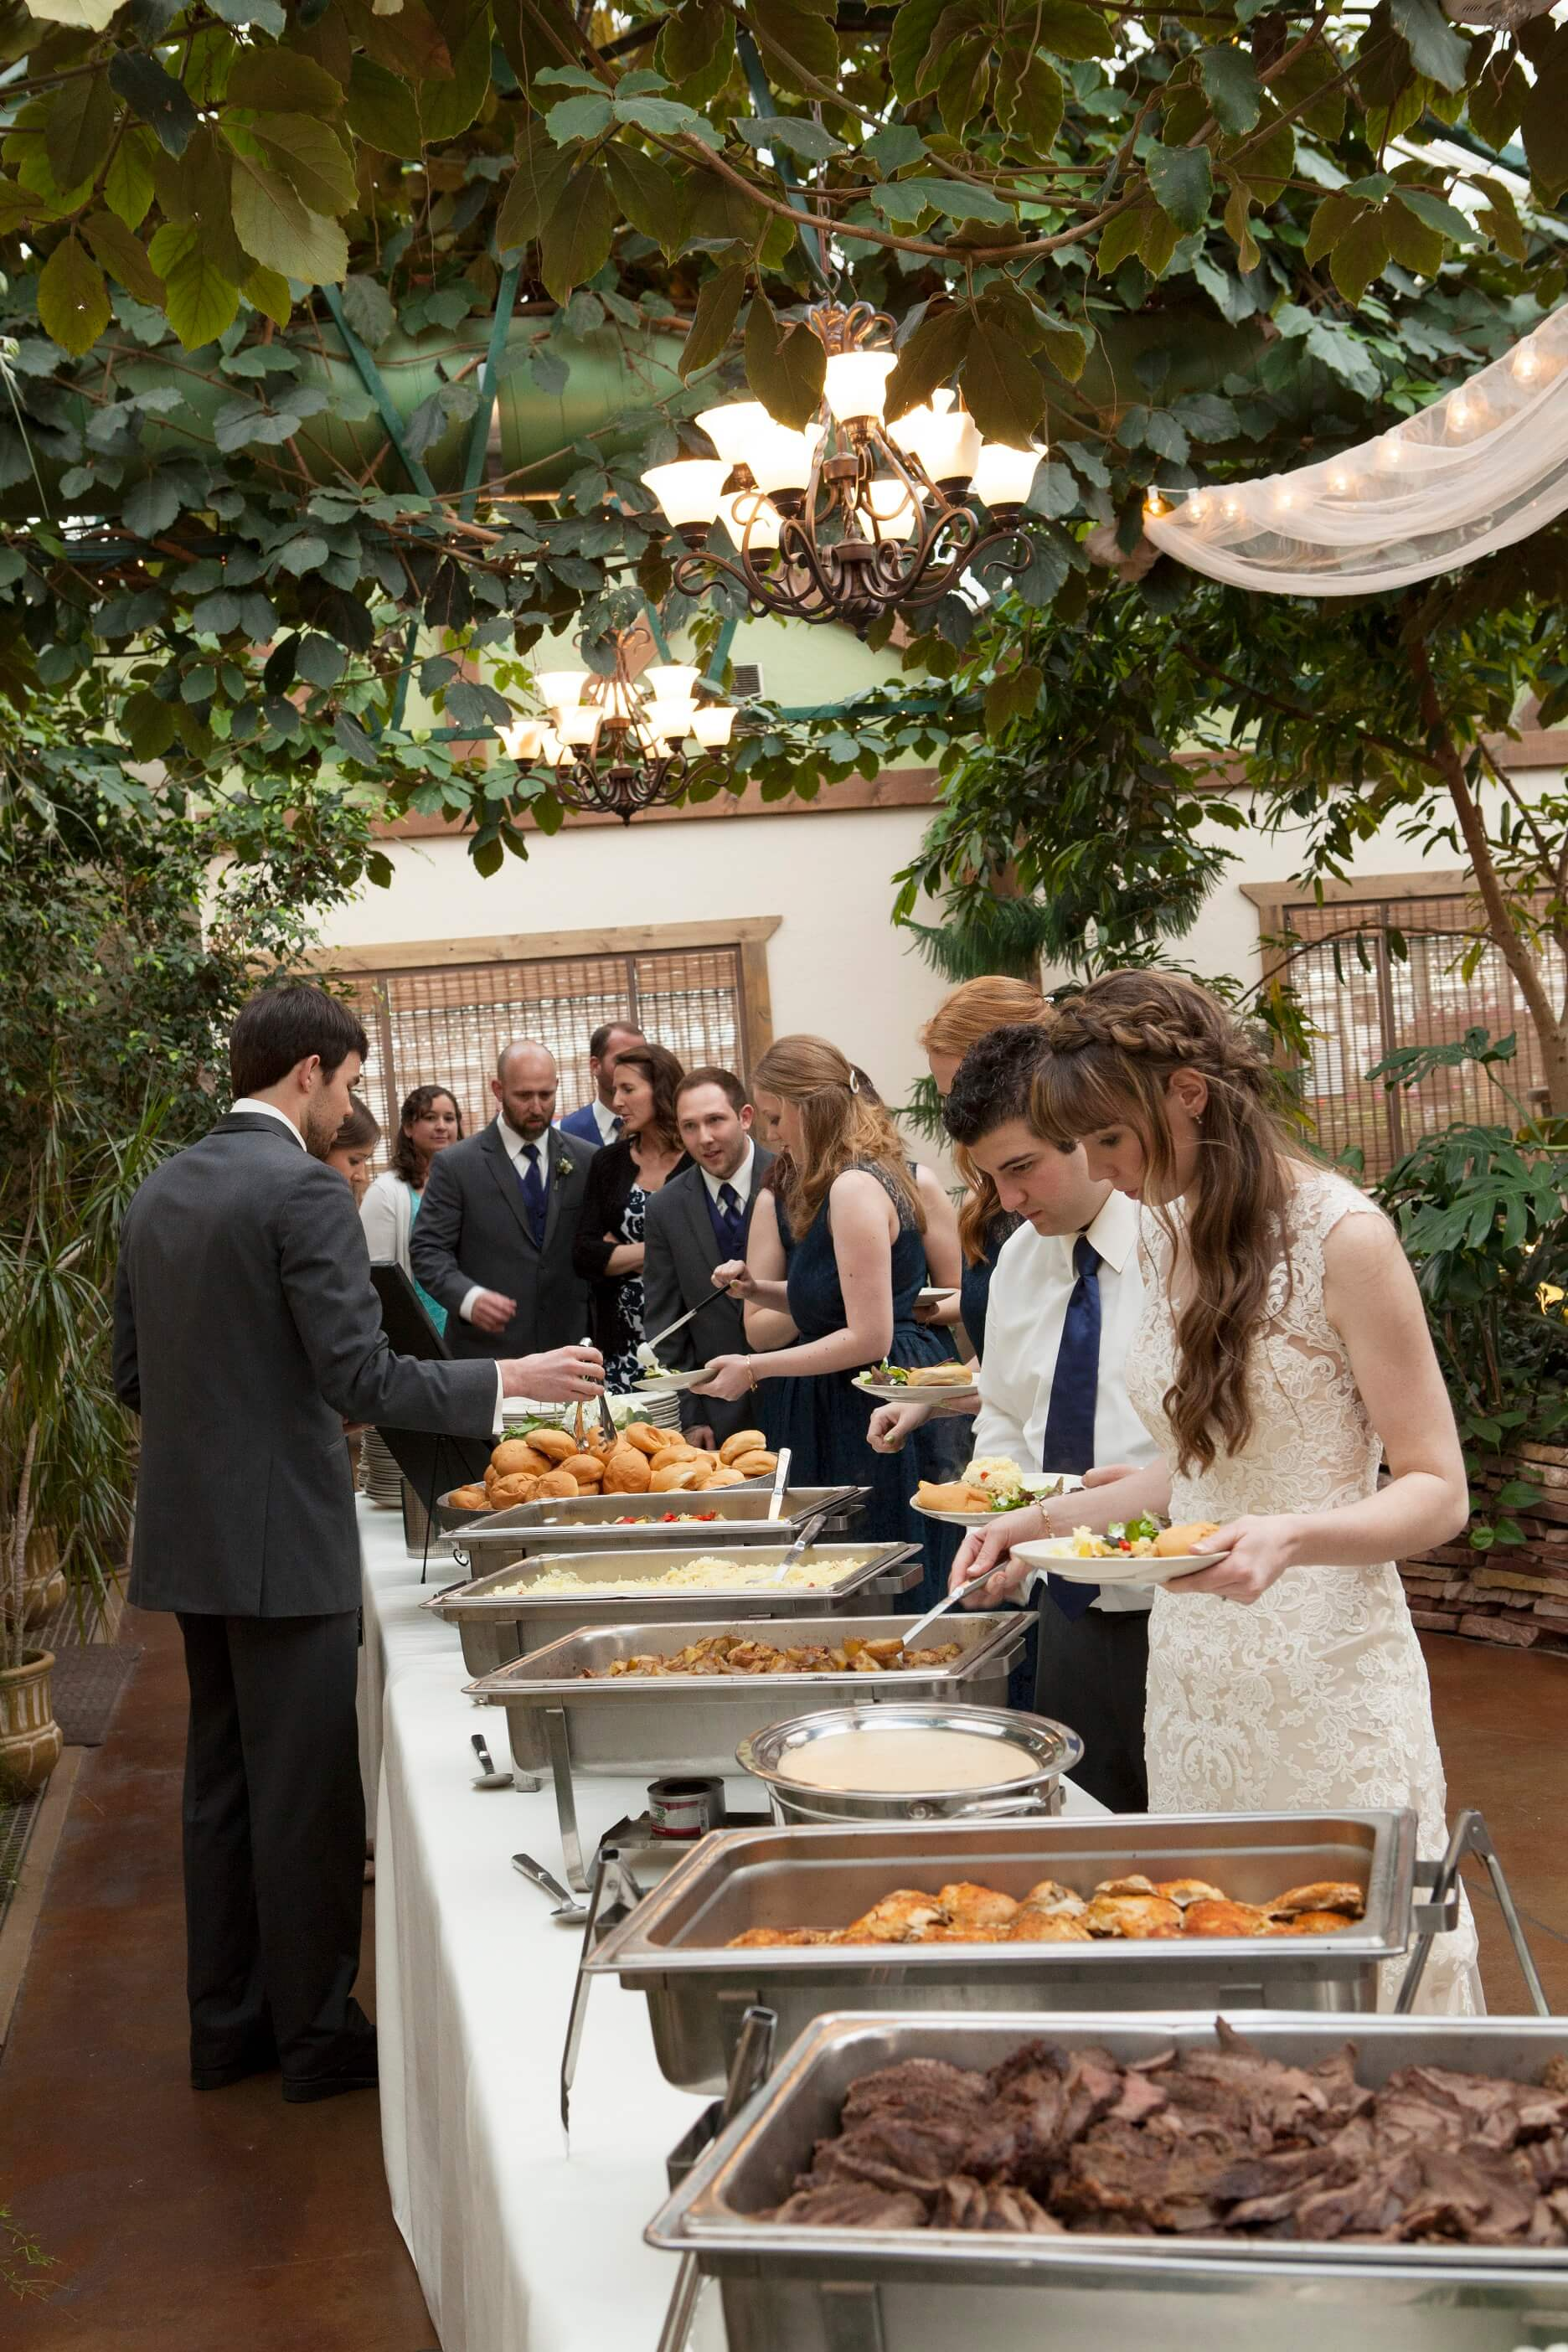 Top 5 Reasons Why You Should Book A Caterer Instead Of